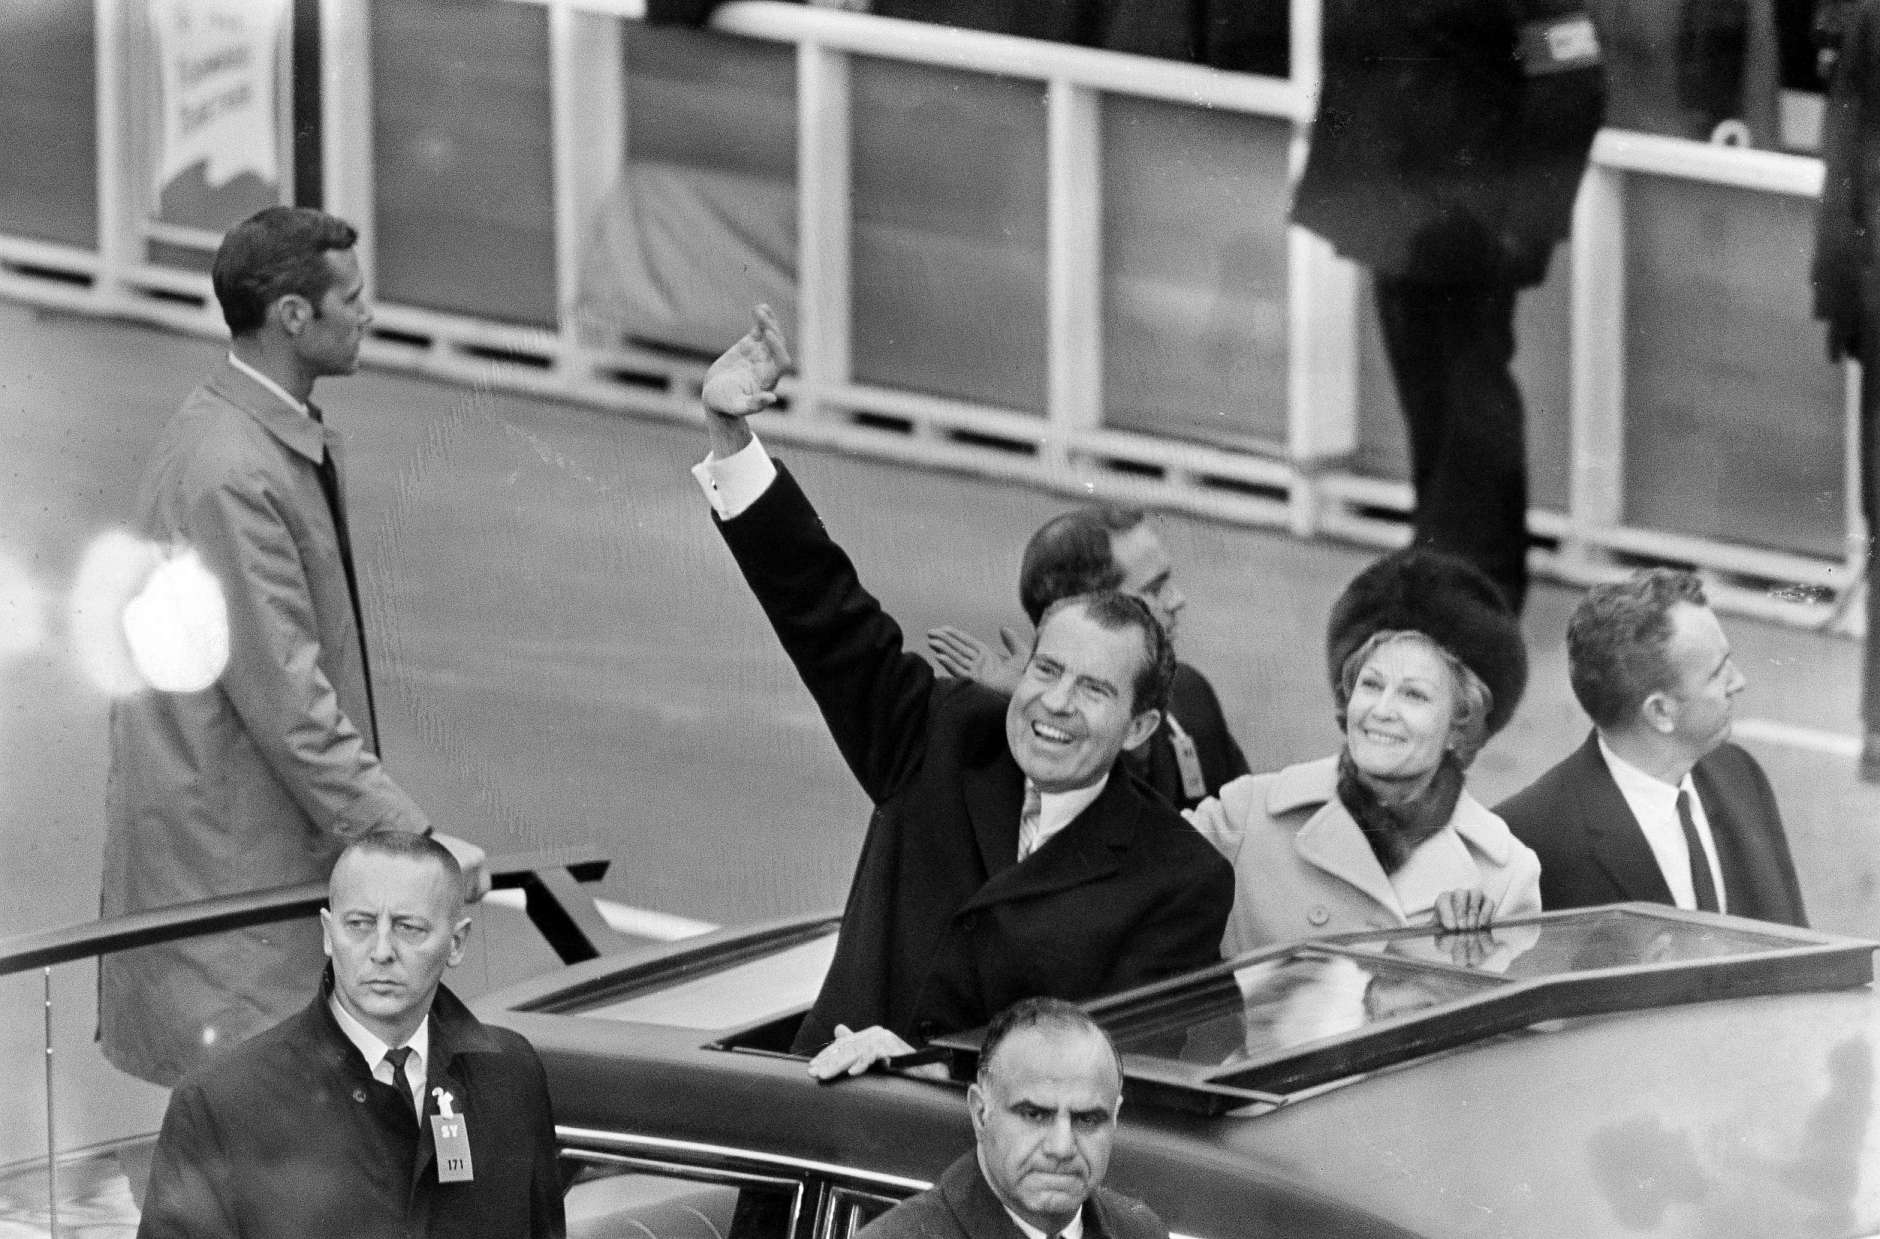 President Nixon waves as he and First Lady Pat Nixon stand in the limousine carrying them from the inauguration at the Capitol to the White House in Washington, D.C., Jan. 20, 1969. Secret Service agents are seen alongside the car. (AP Photo)